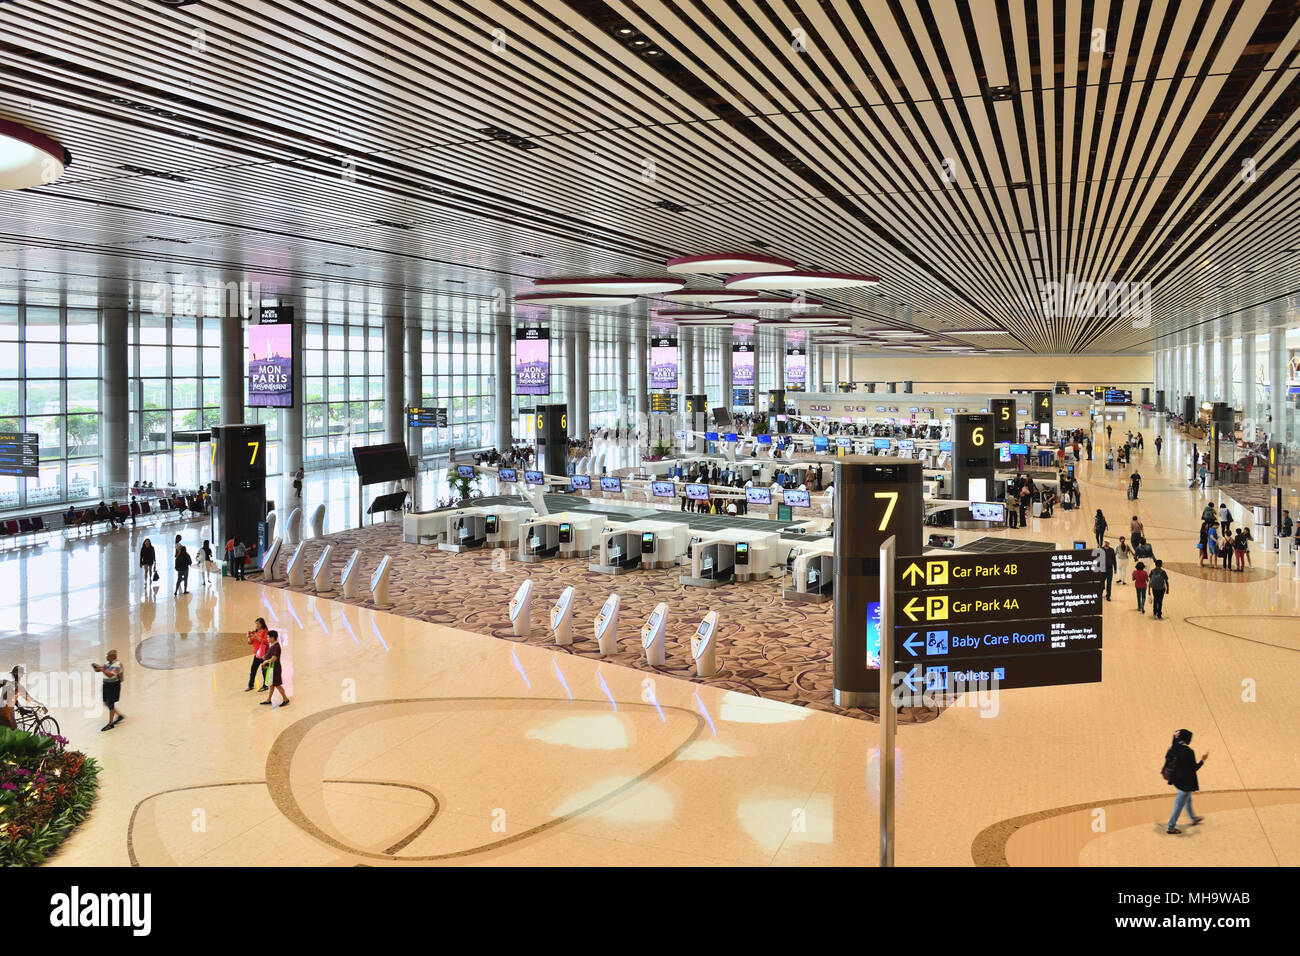 Singapore Changi International Airport, Terminal 4. The departure hall features new automatic check-in counters. - Stock Image